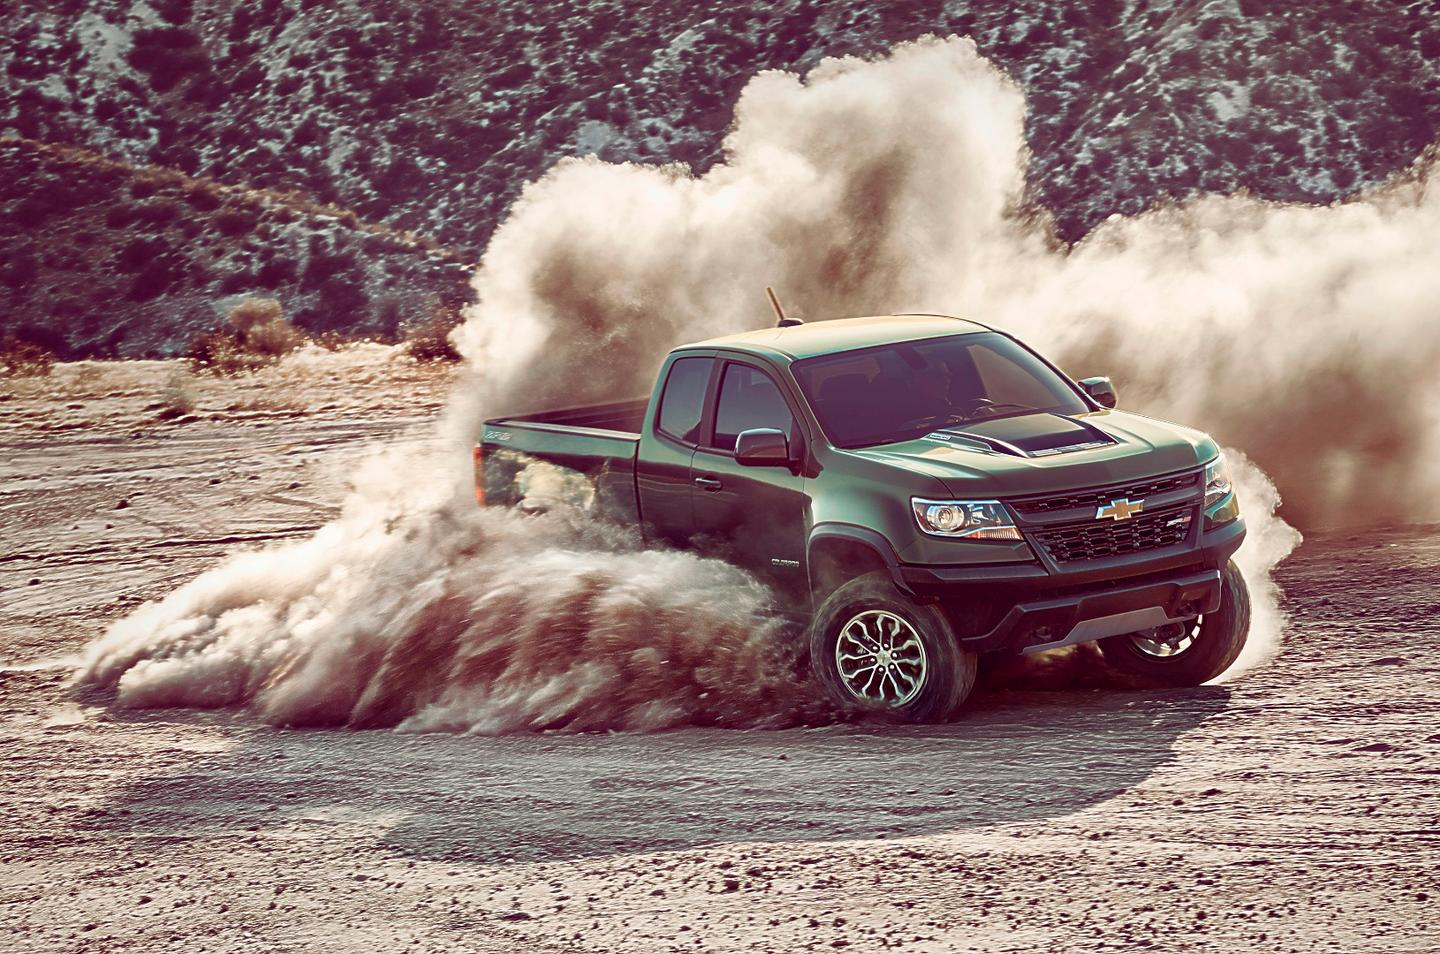 The Colorado ZR2 was previewed two years ago